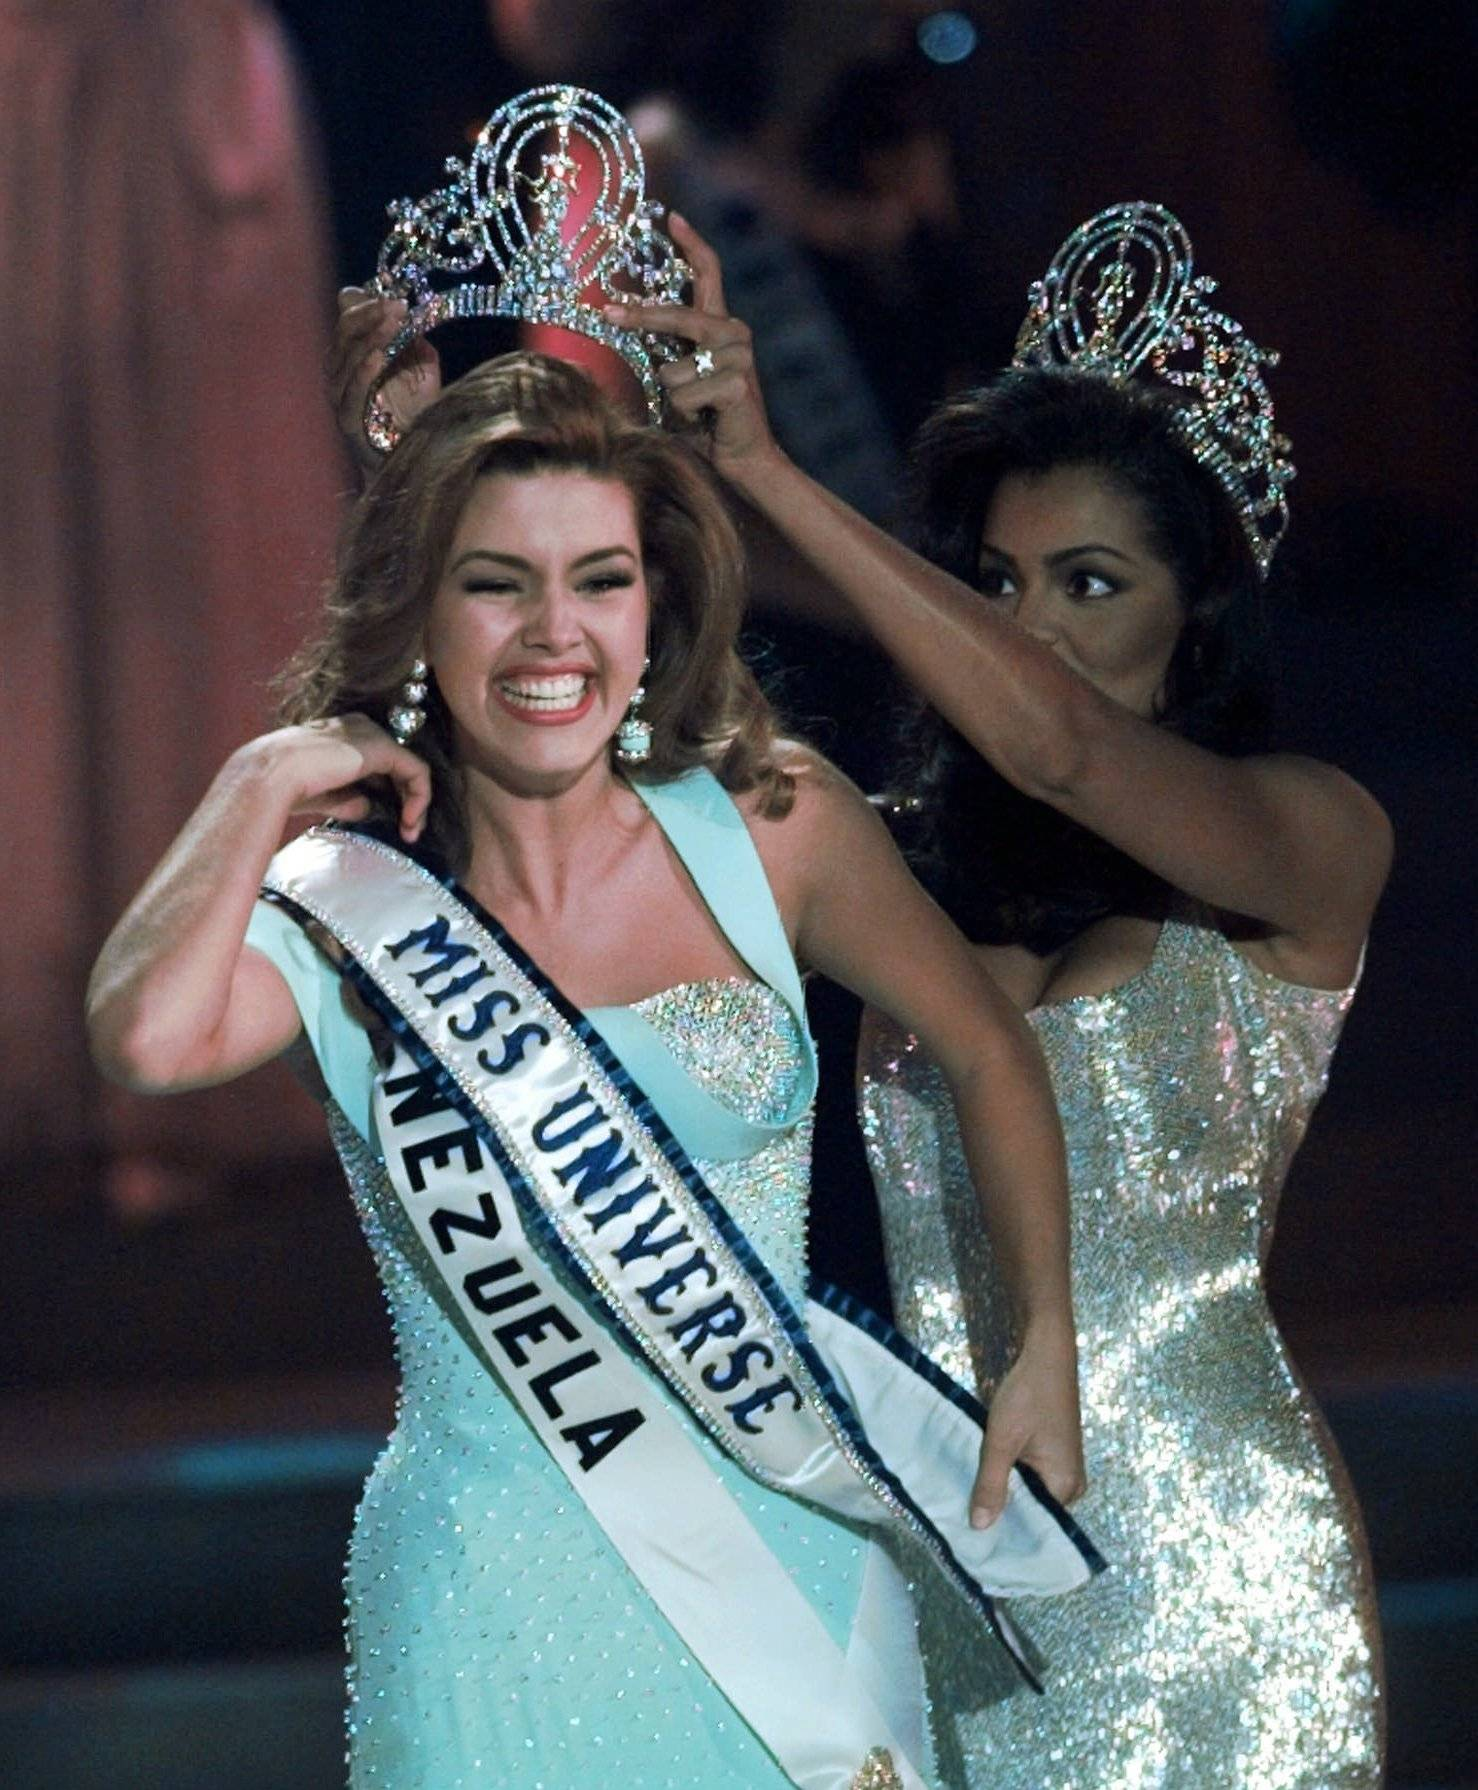 Analysis: Trump stumbles into Clinton's trap by feuding with Latina beauty queen